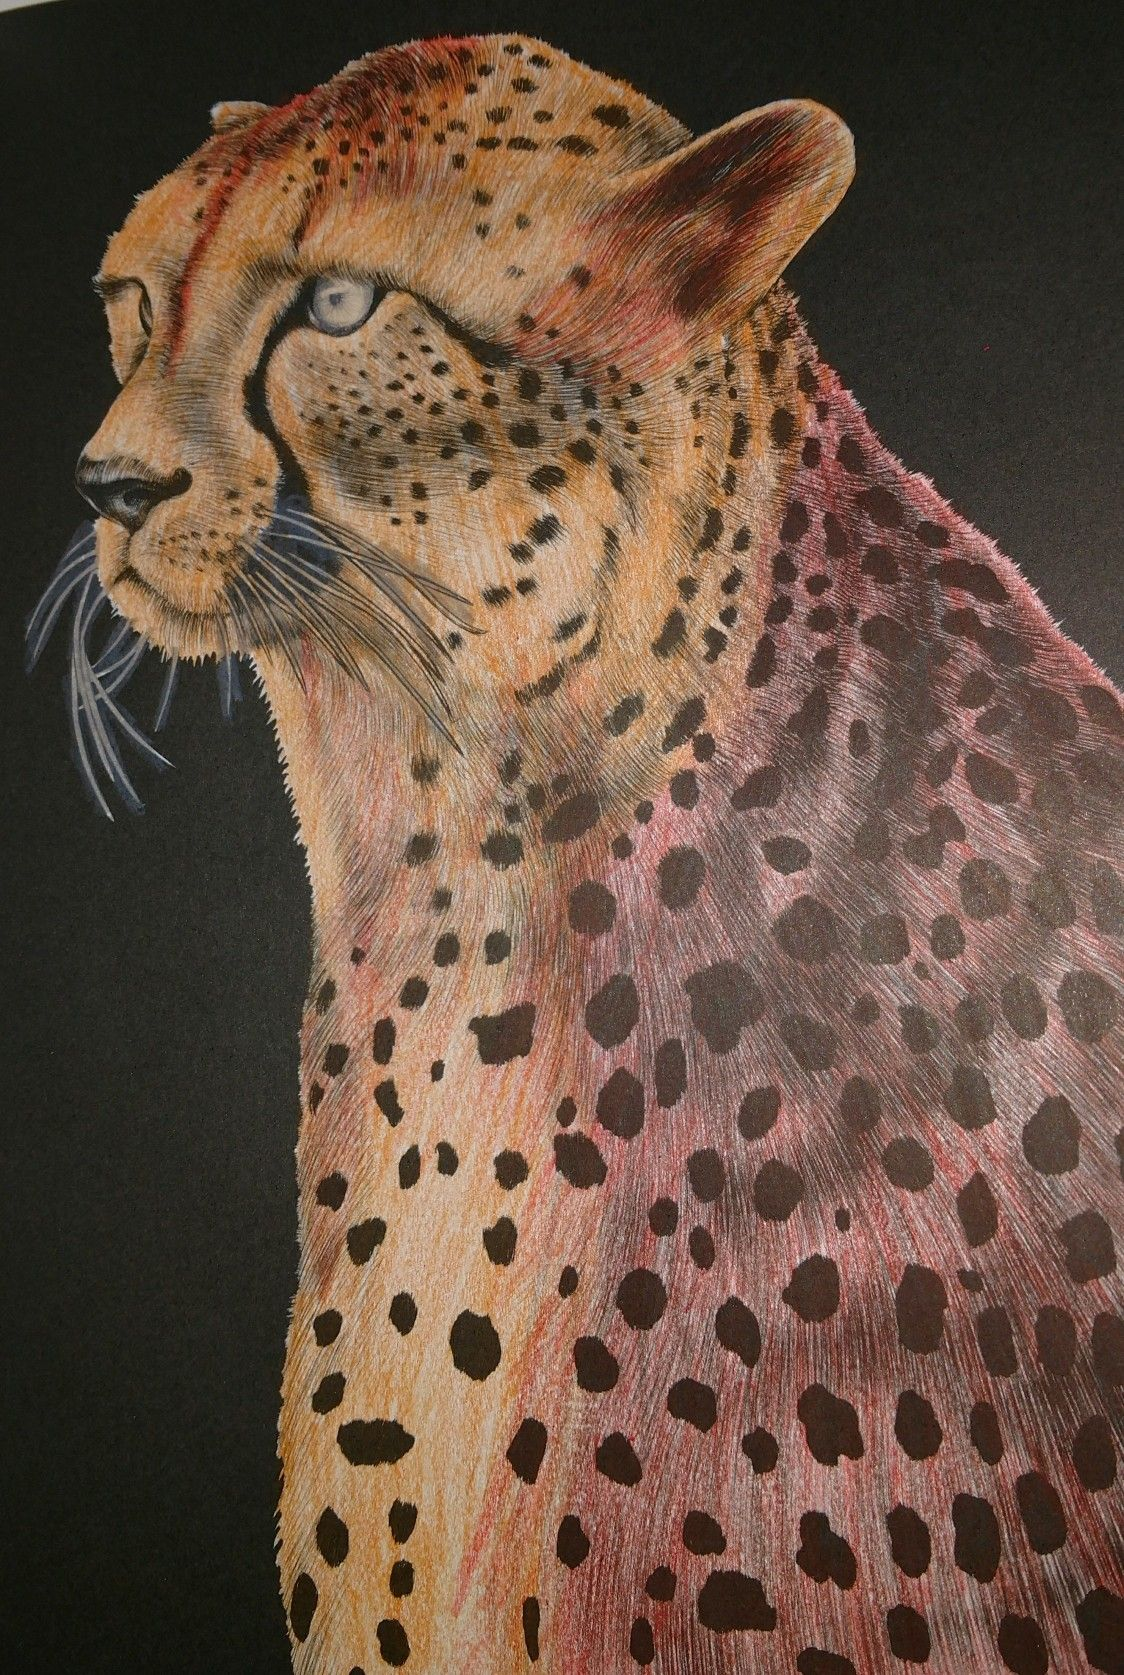 Coloring pages for cheetah - Cheetah Adult Coloring Pagescheetahs